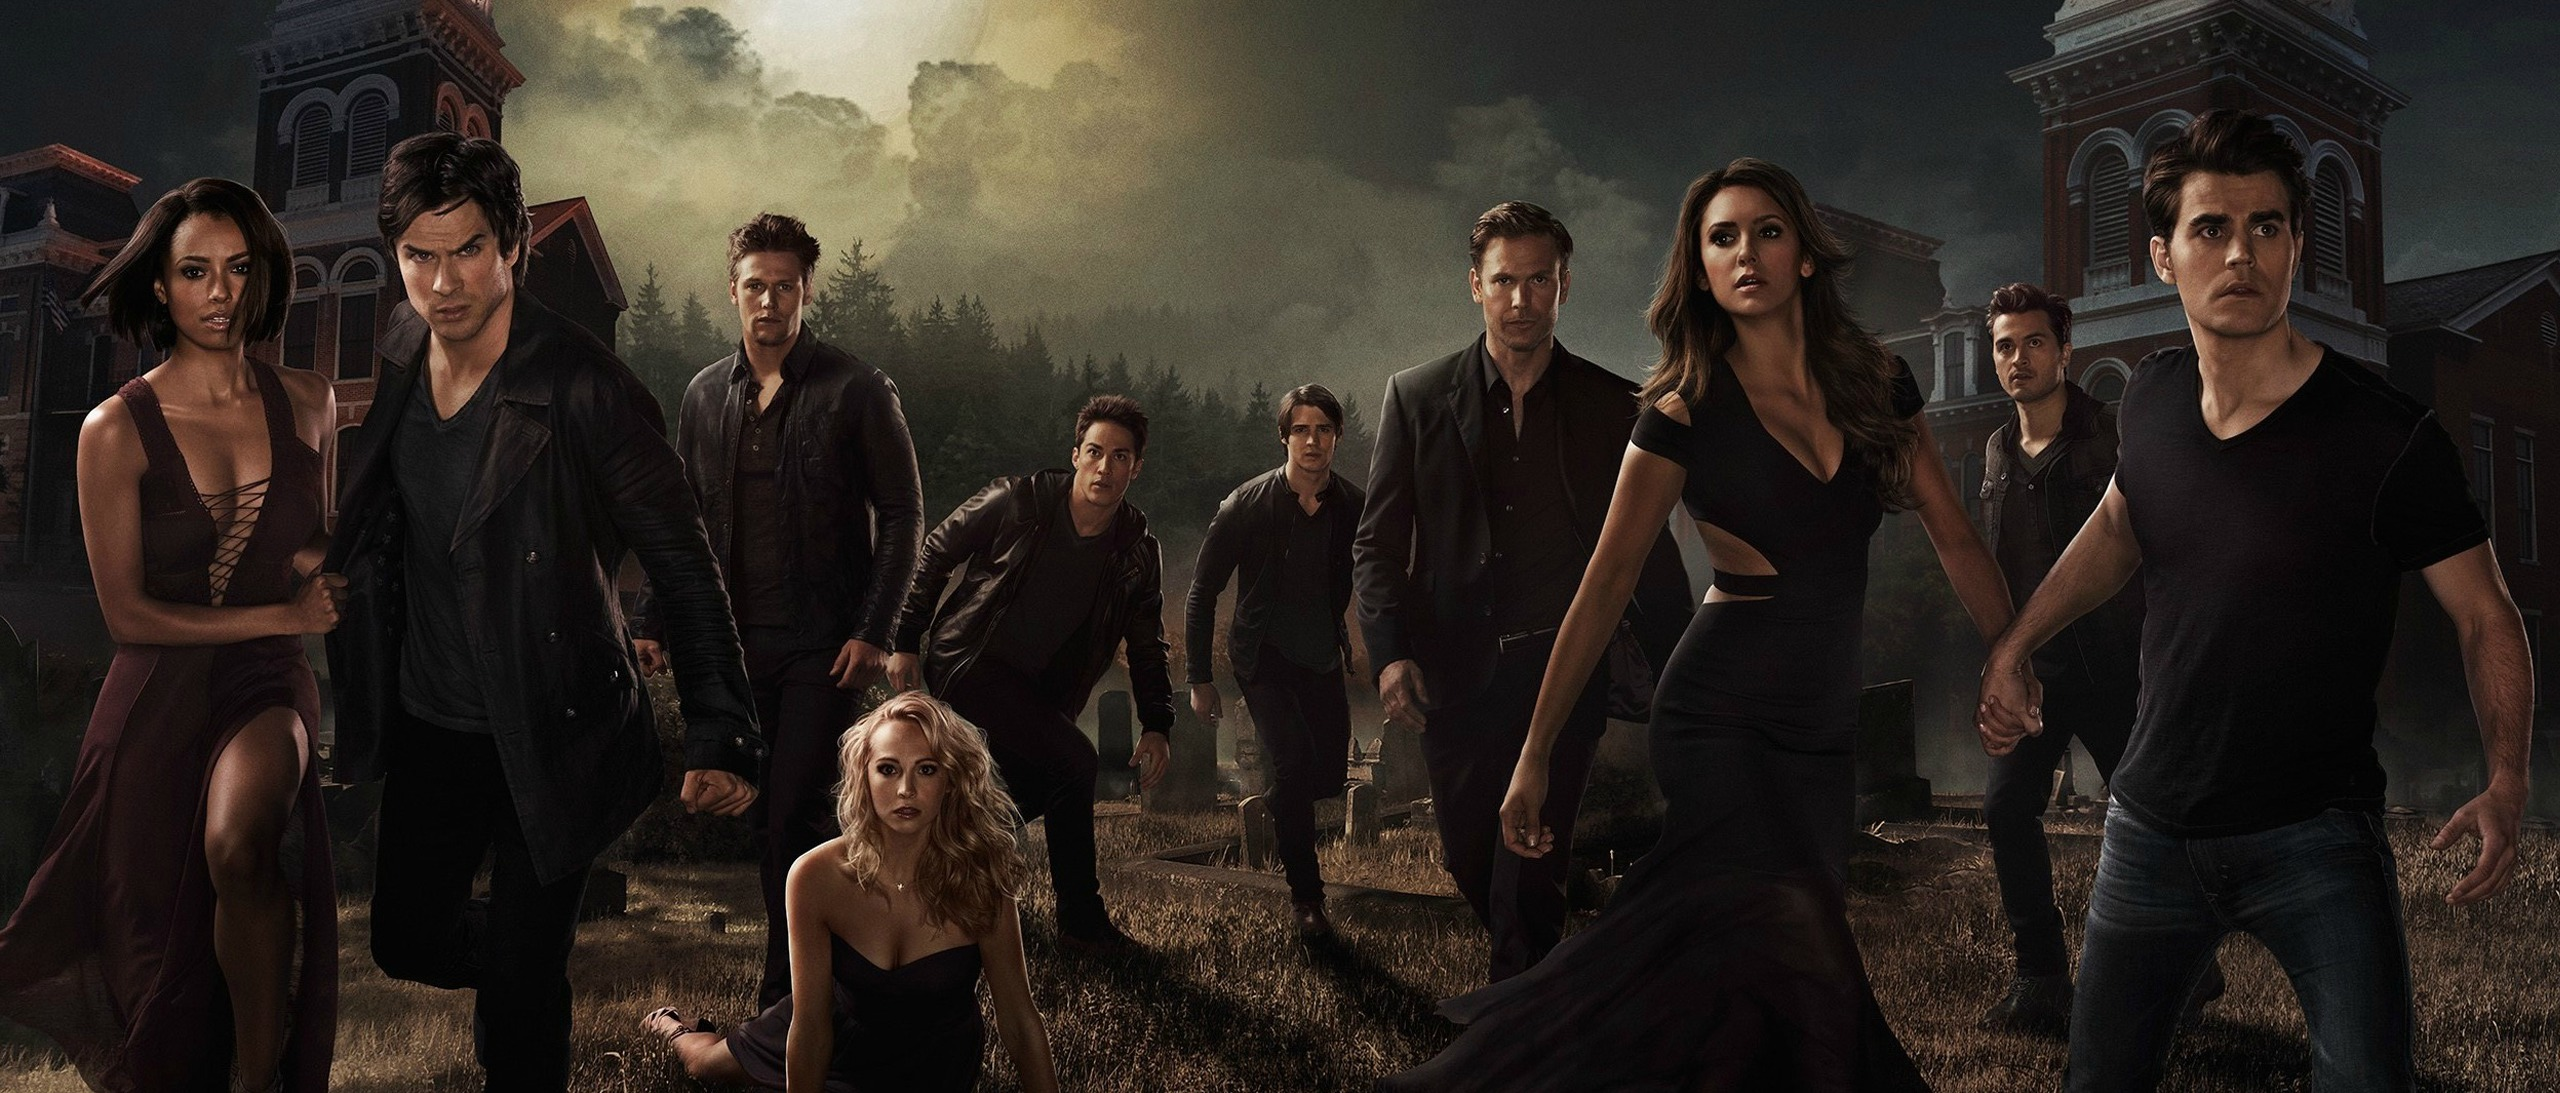 star24-tv-renouvellement-serie-tvd